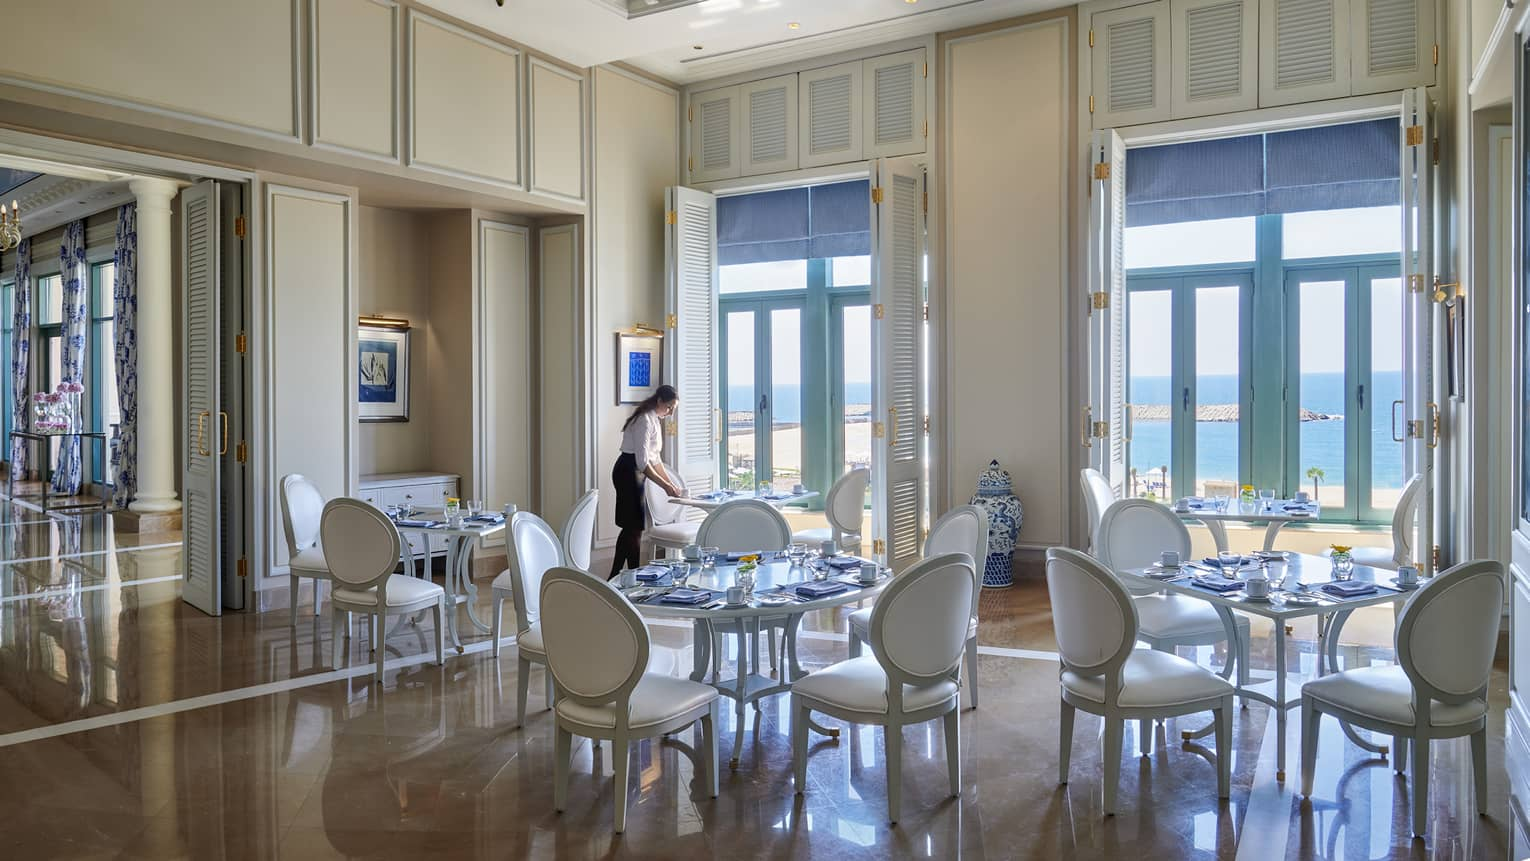 Server sets white table at Kala restaurant, white shutters with blue blinds lead to ocean views